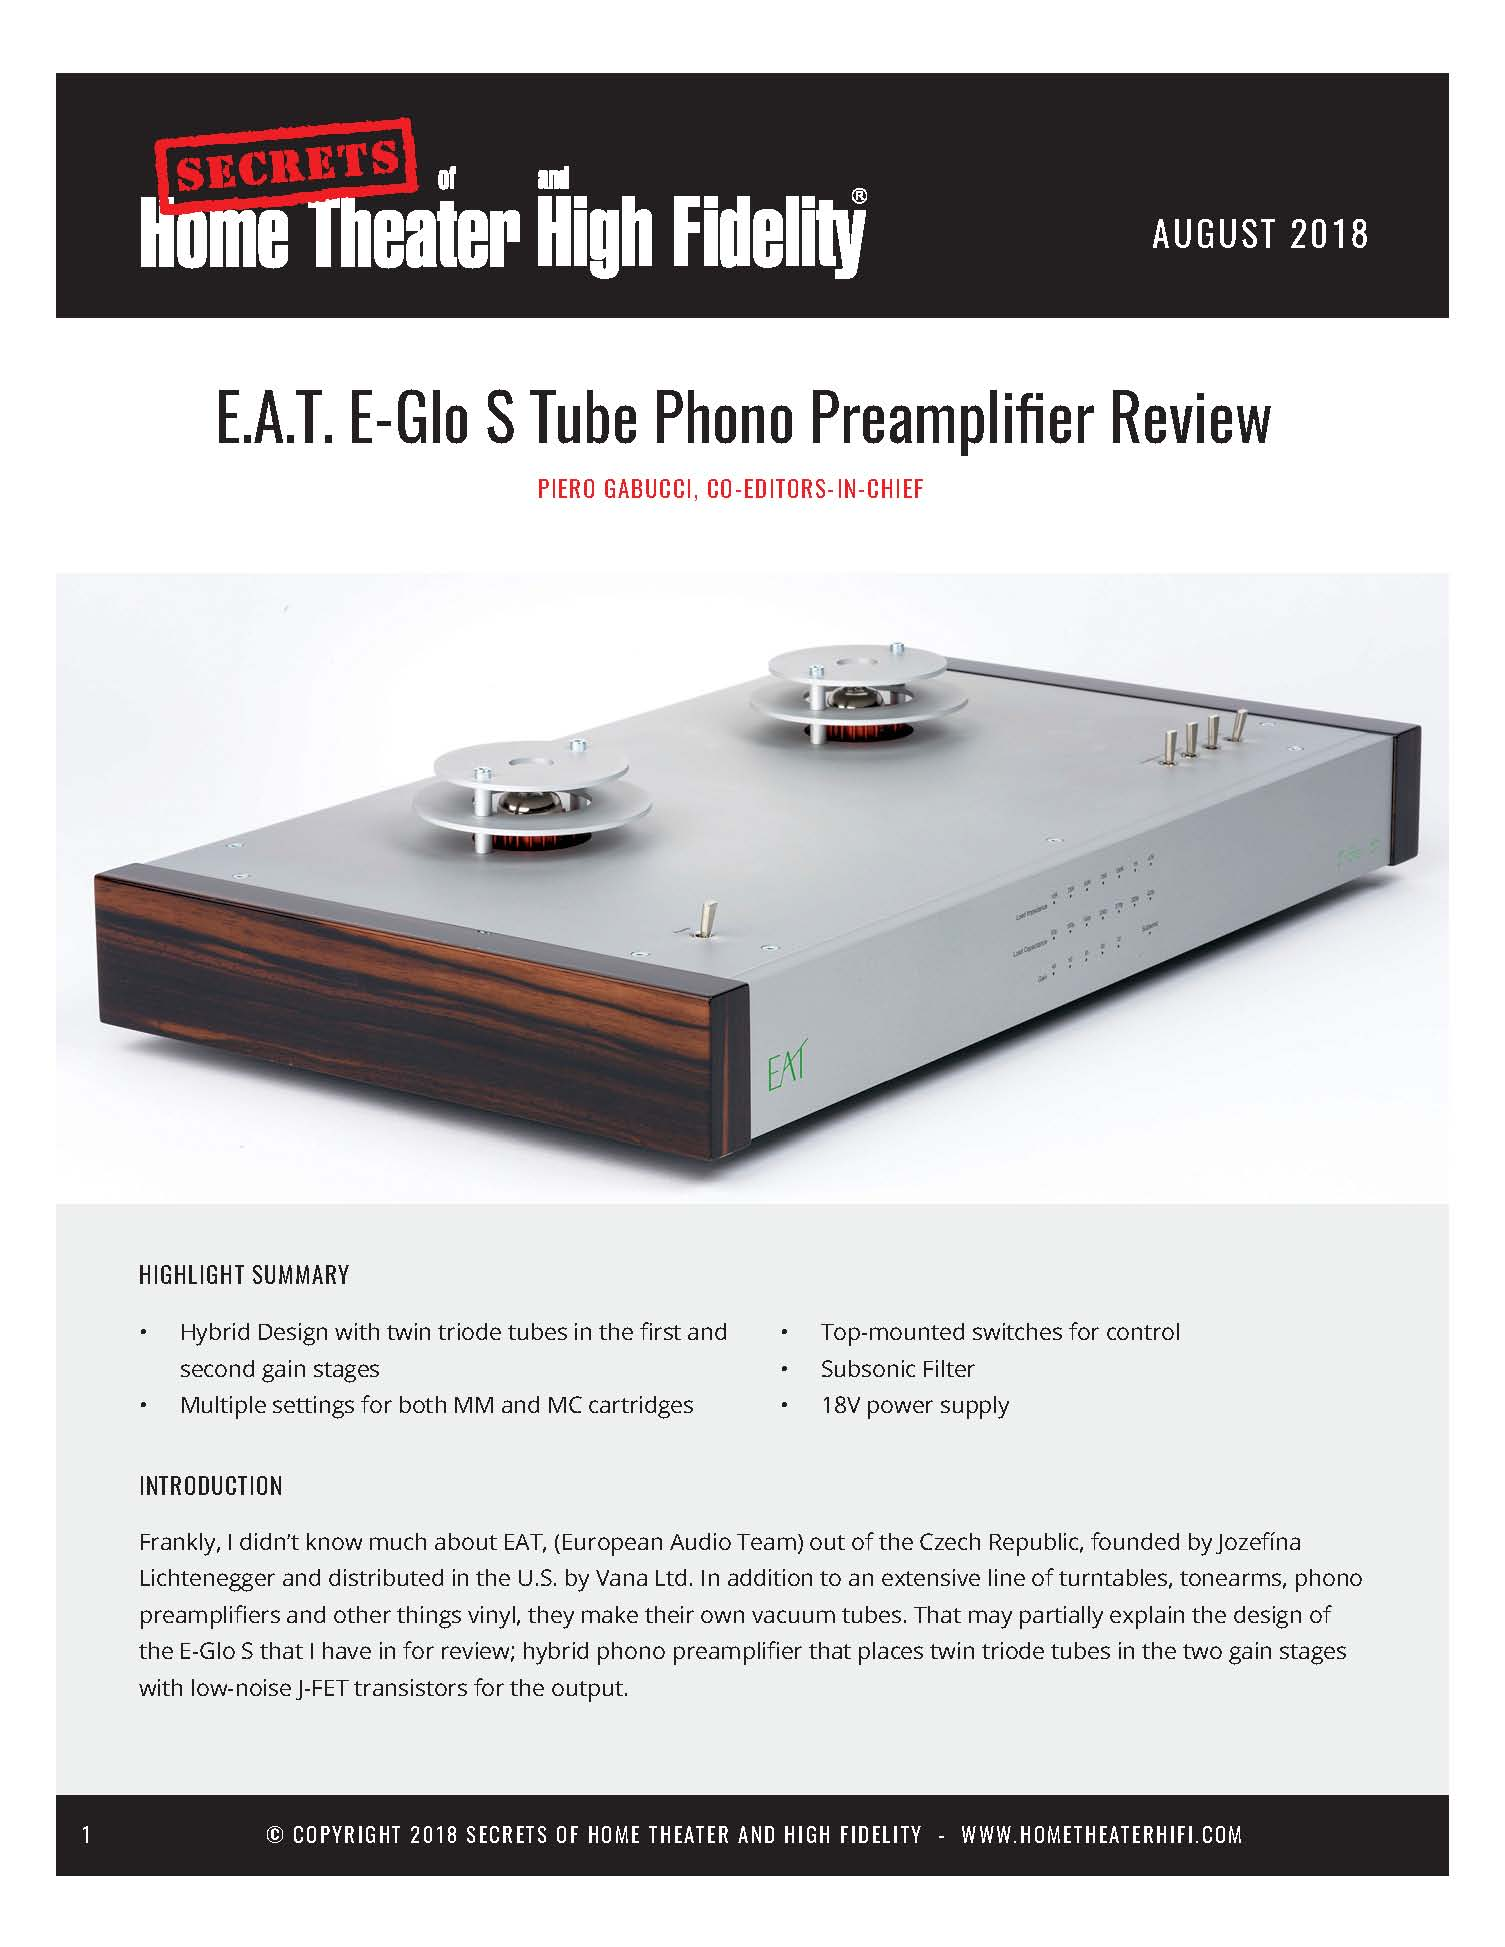 hometheaterreview-page-1.jpg